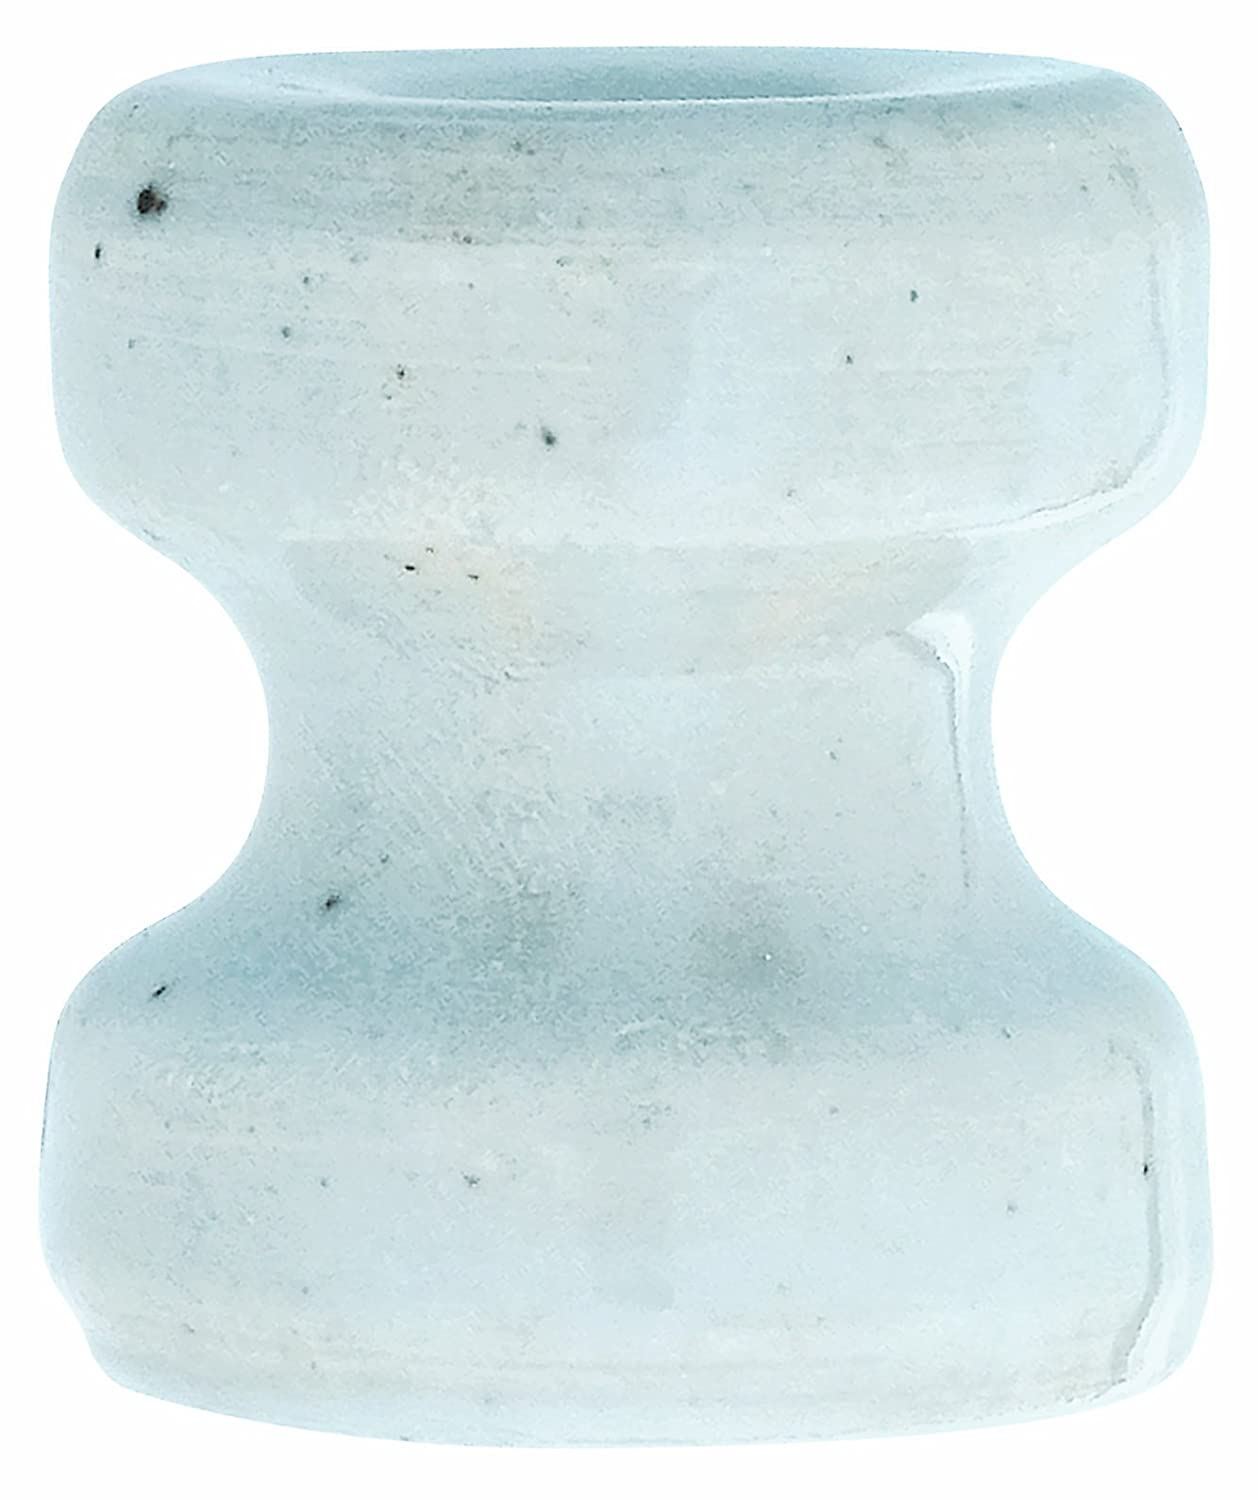 Fi-Shock MP-6 Small Corner or End Post Porcelain Insulator, 10-Per Box